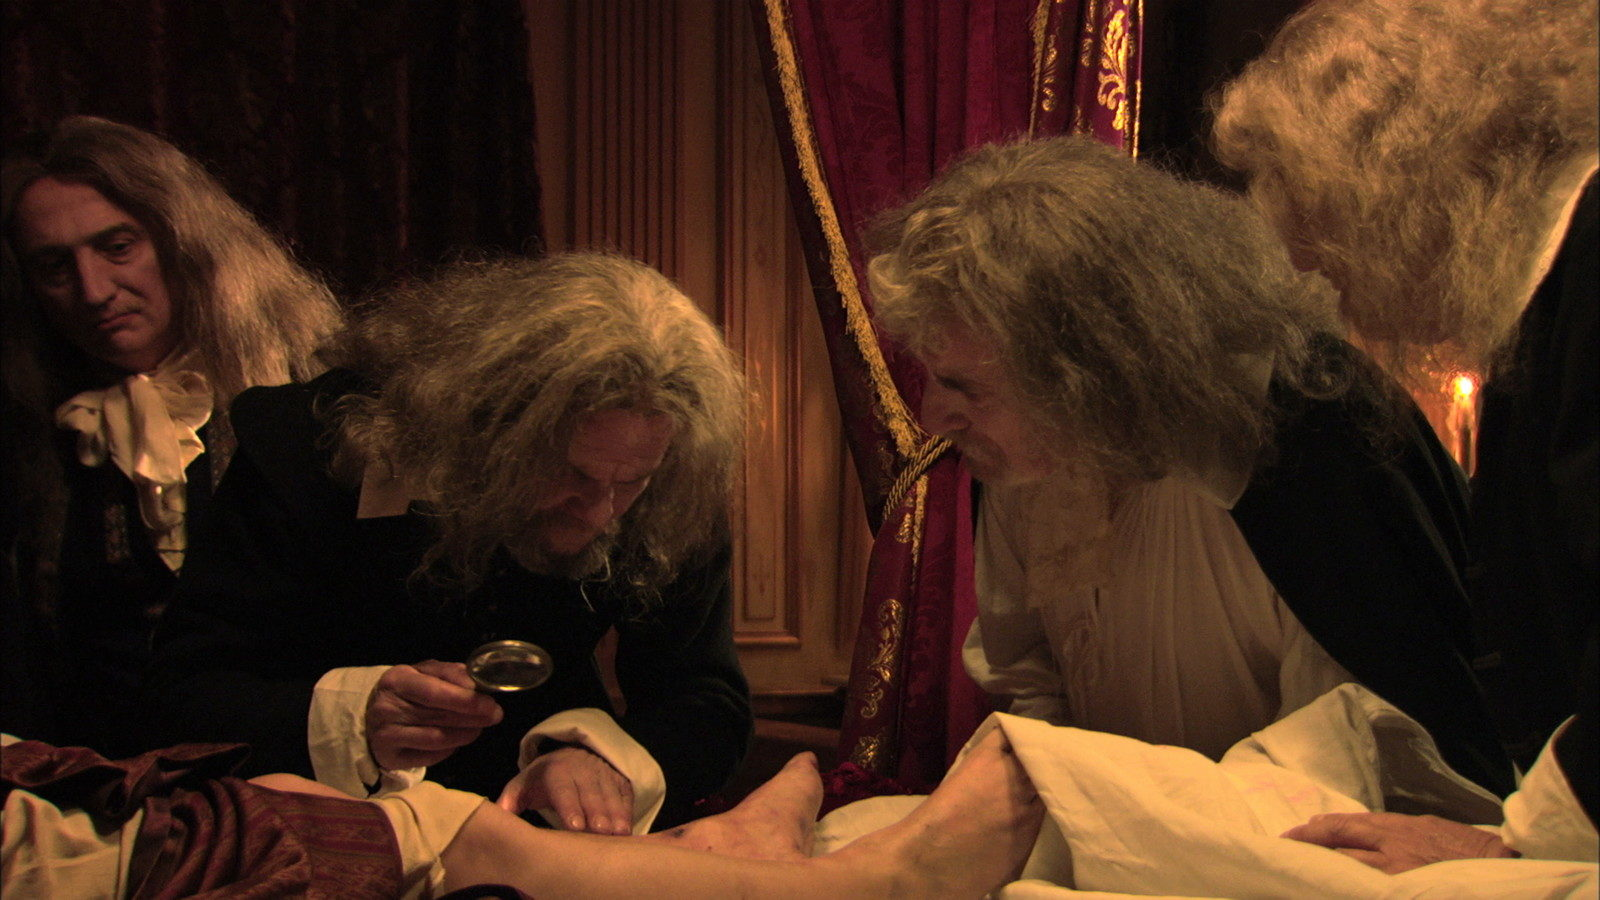 Examining the King's body in The Death of Louis XIV